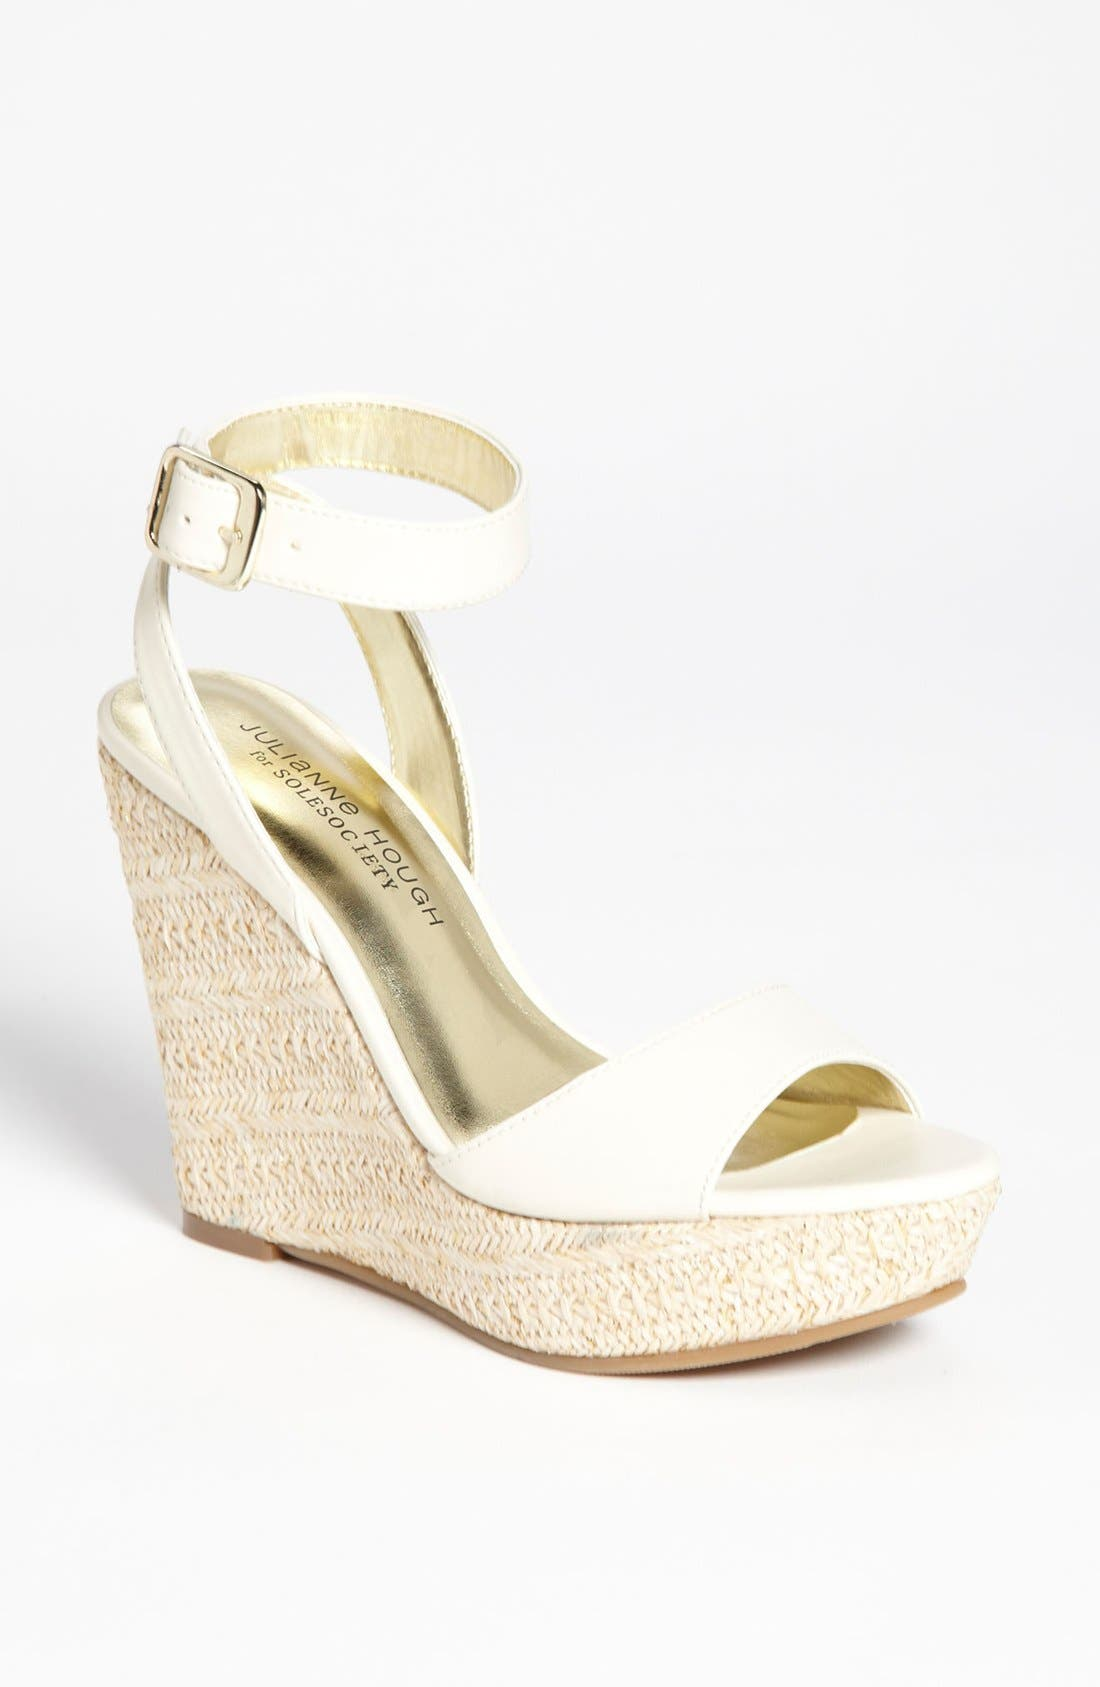 Alternate Image 1 Selected - Julianne Hough for Sole Society 'Adrienne' Wedge Sandal